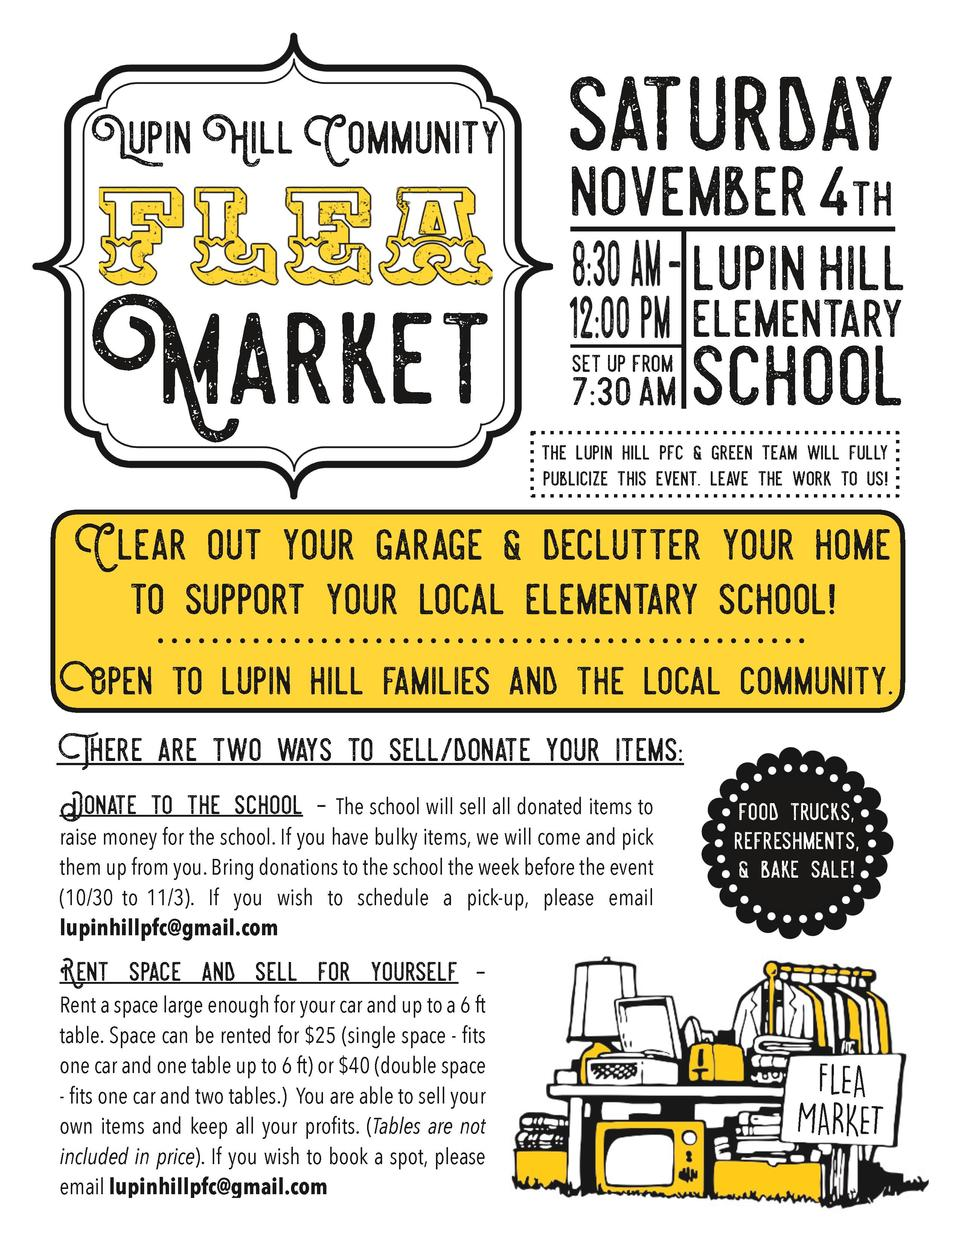 Lupin Hill Community  Market  saturday november 4th  lupin hill  set up from  7 30 am  elementary  school  the lupin hill ...